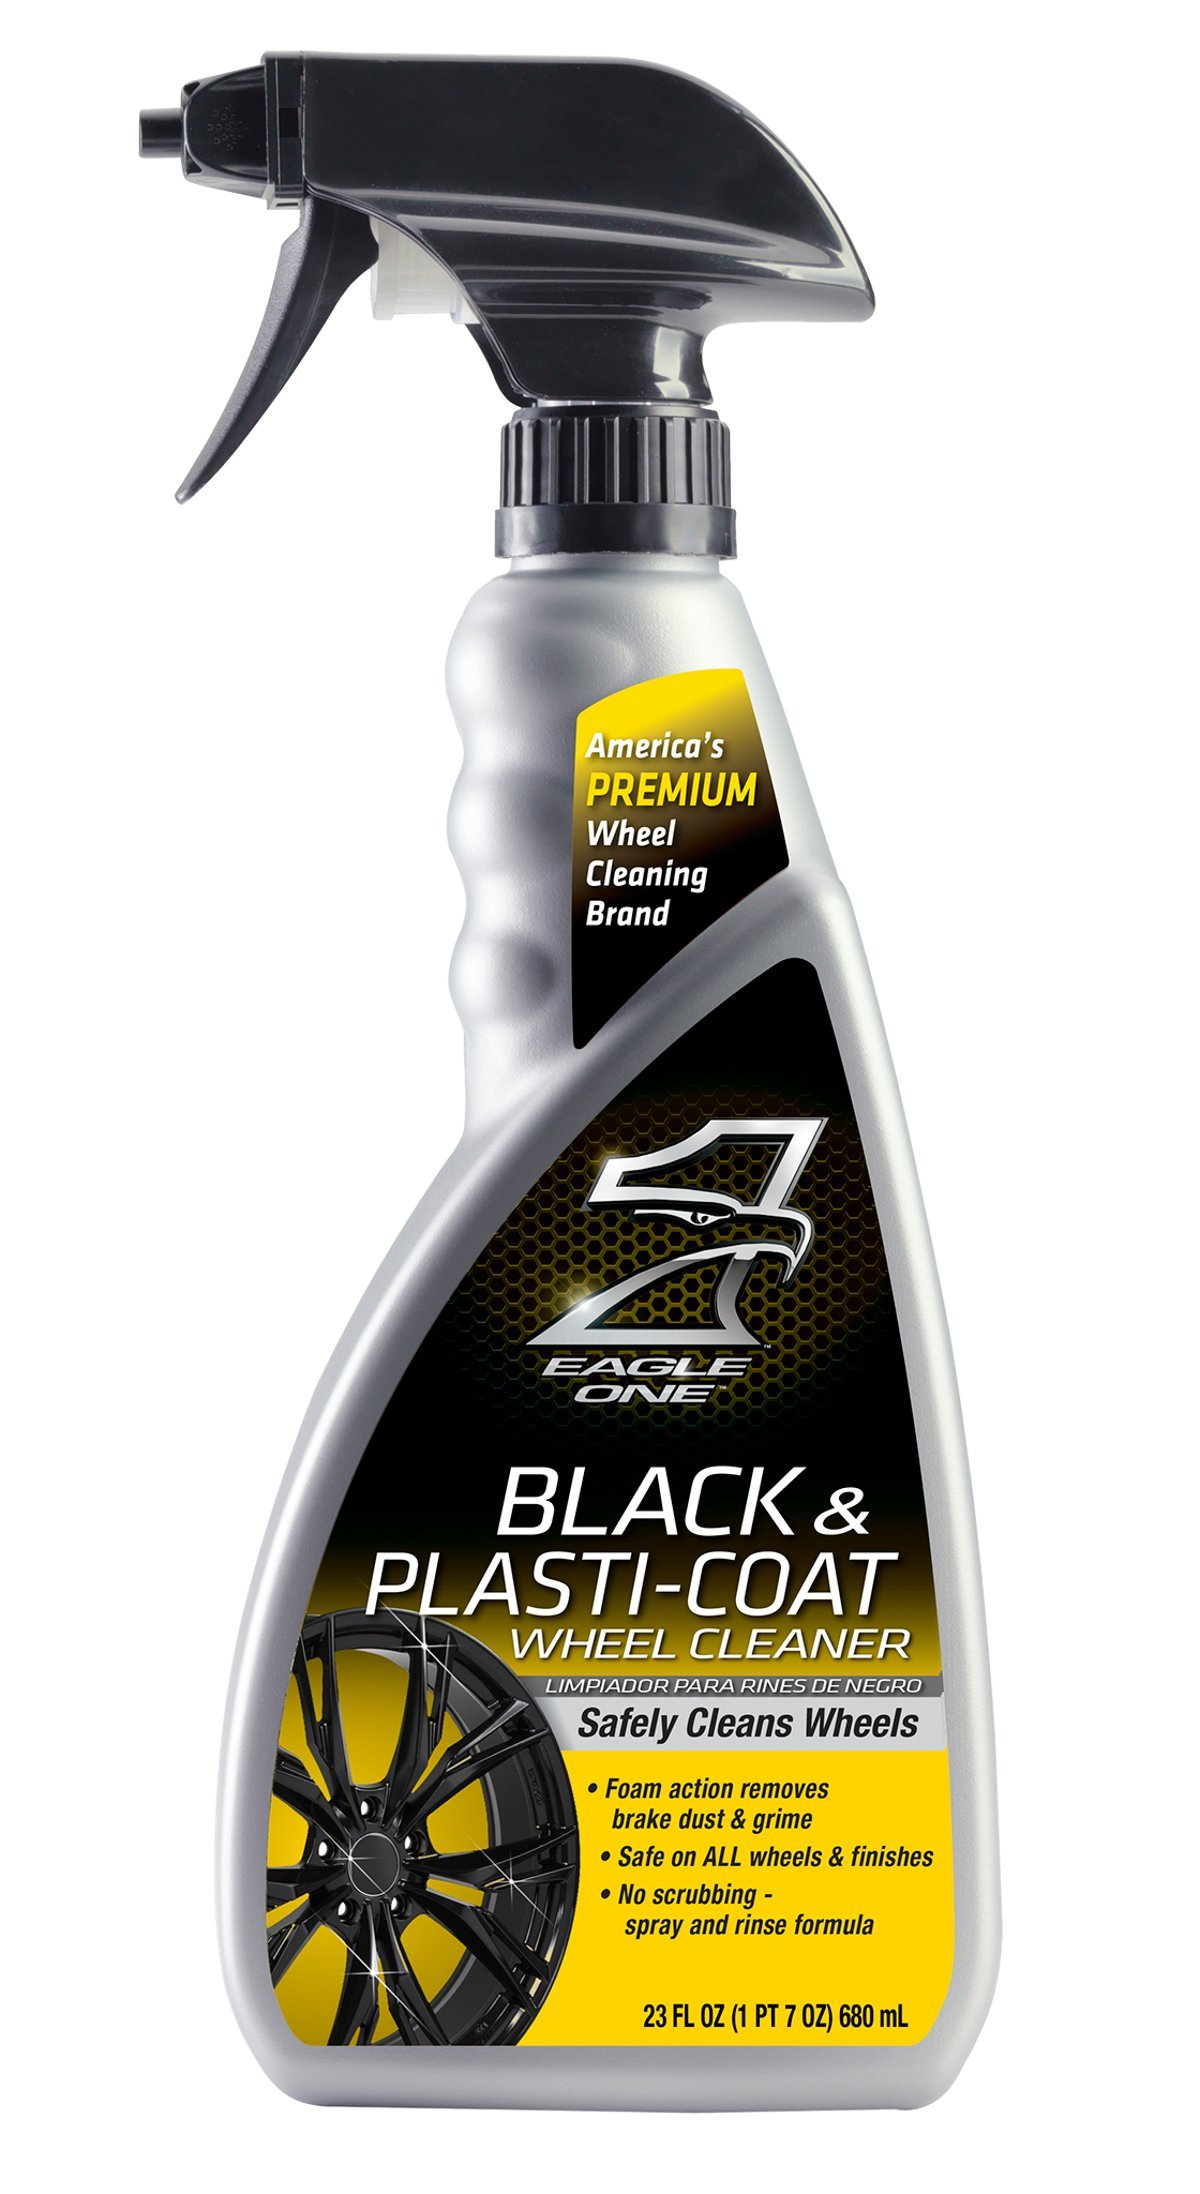 Eagle One E301345400 Black and Plastic-Coat Wheel Cleaner, 23 fl. oz. by Eagle One (Image #1)